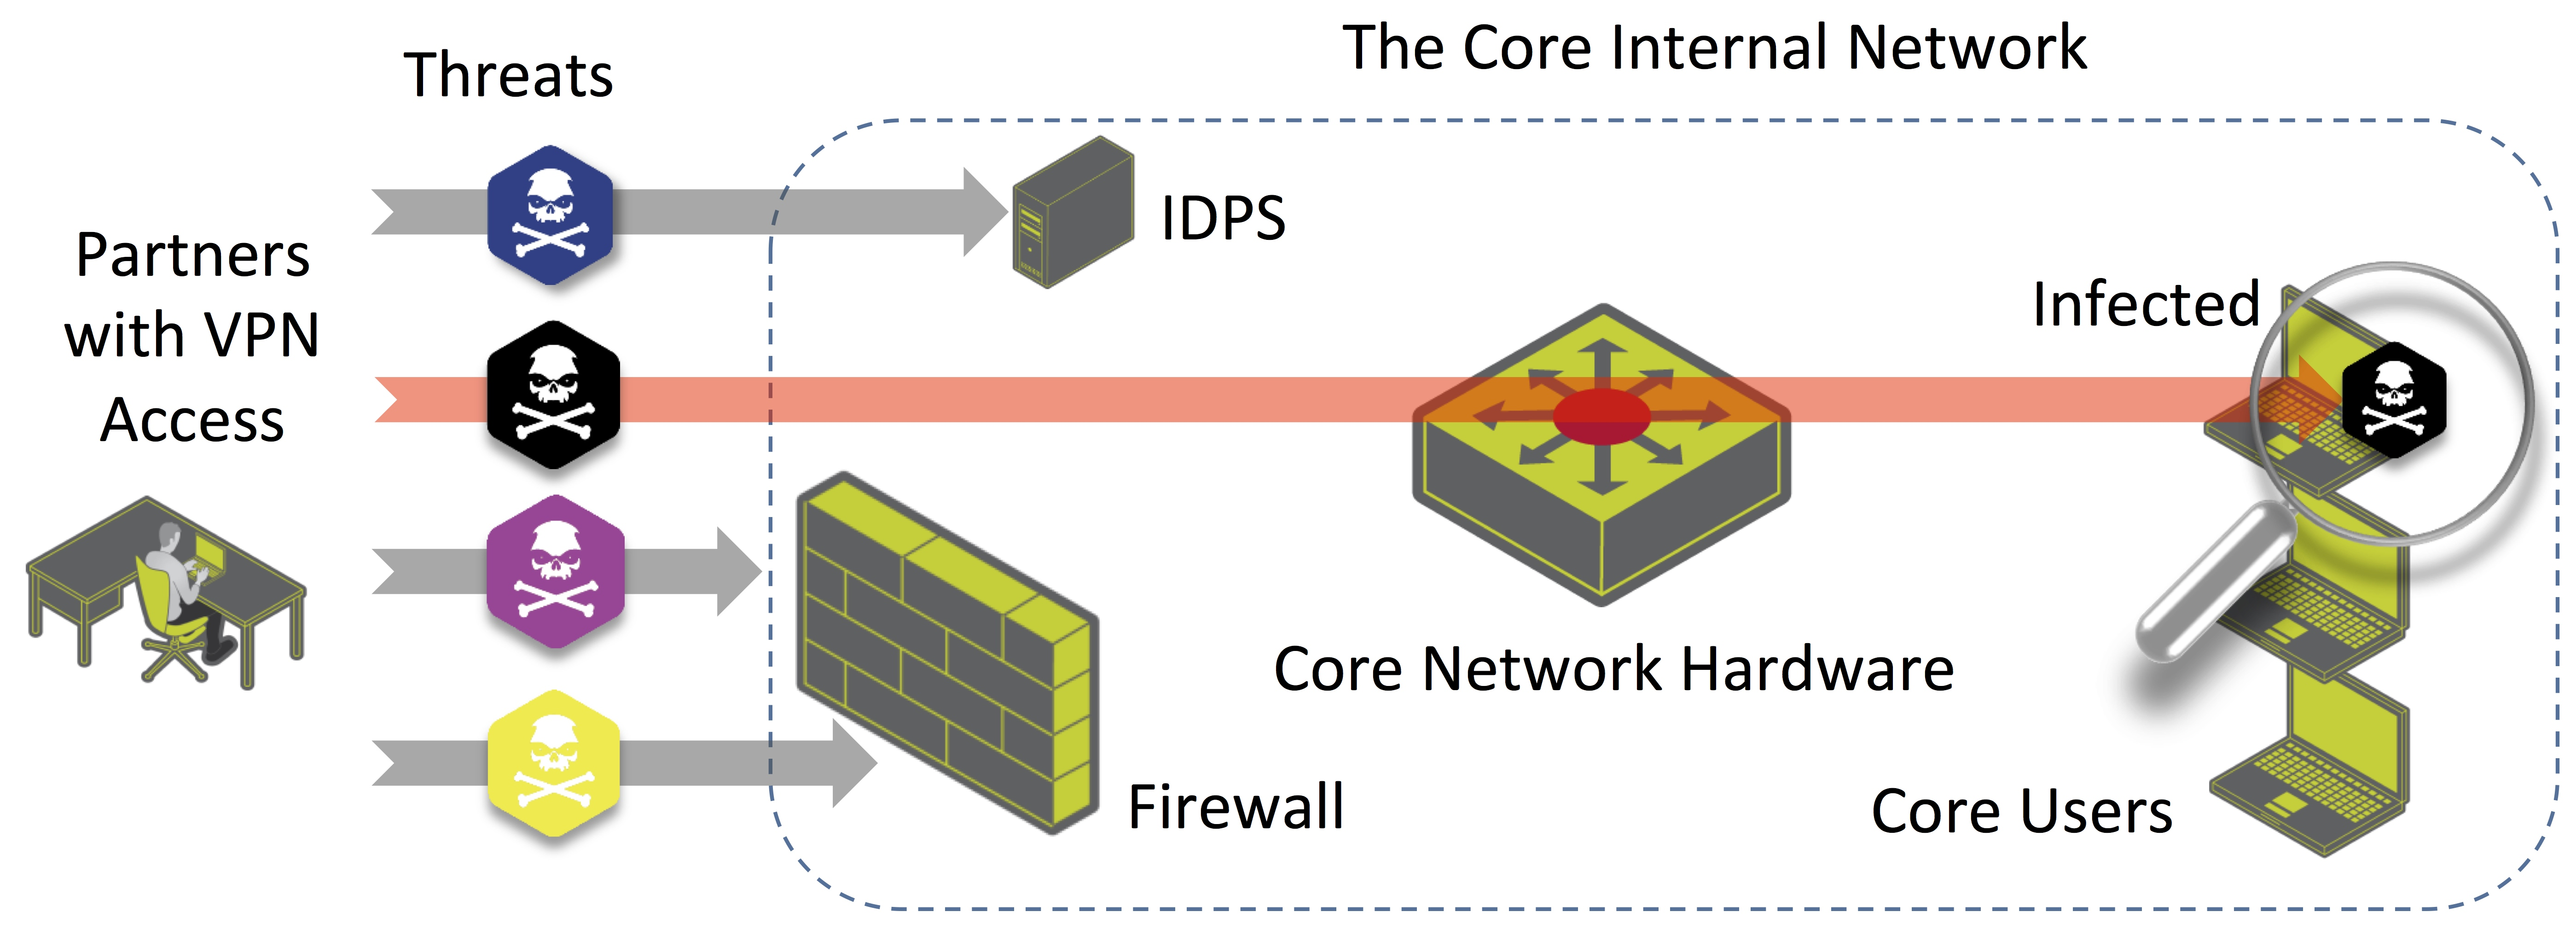 ids network diagram how to make crochet pattern securing vpns pipeline magazine oss and bss news info